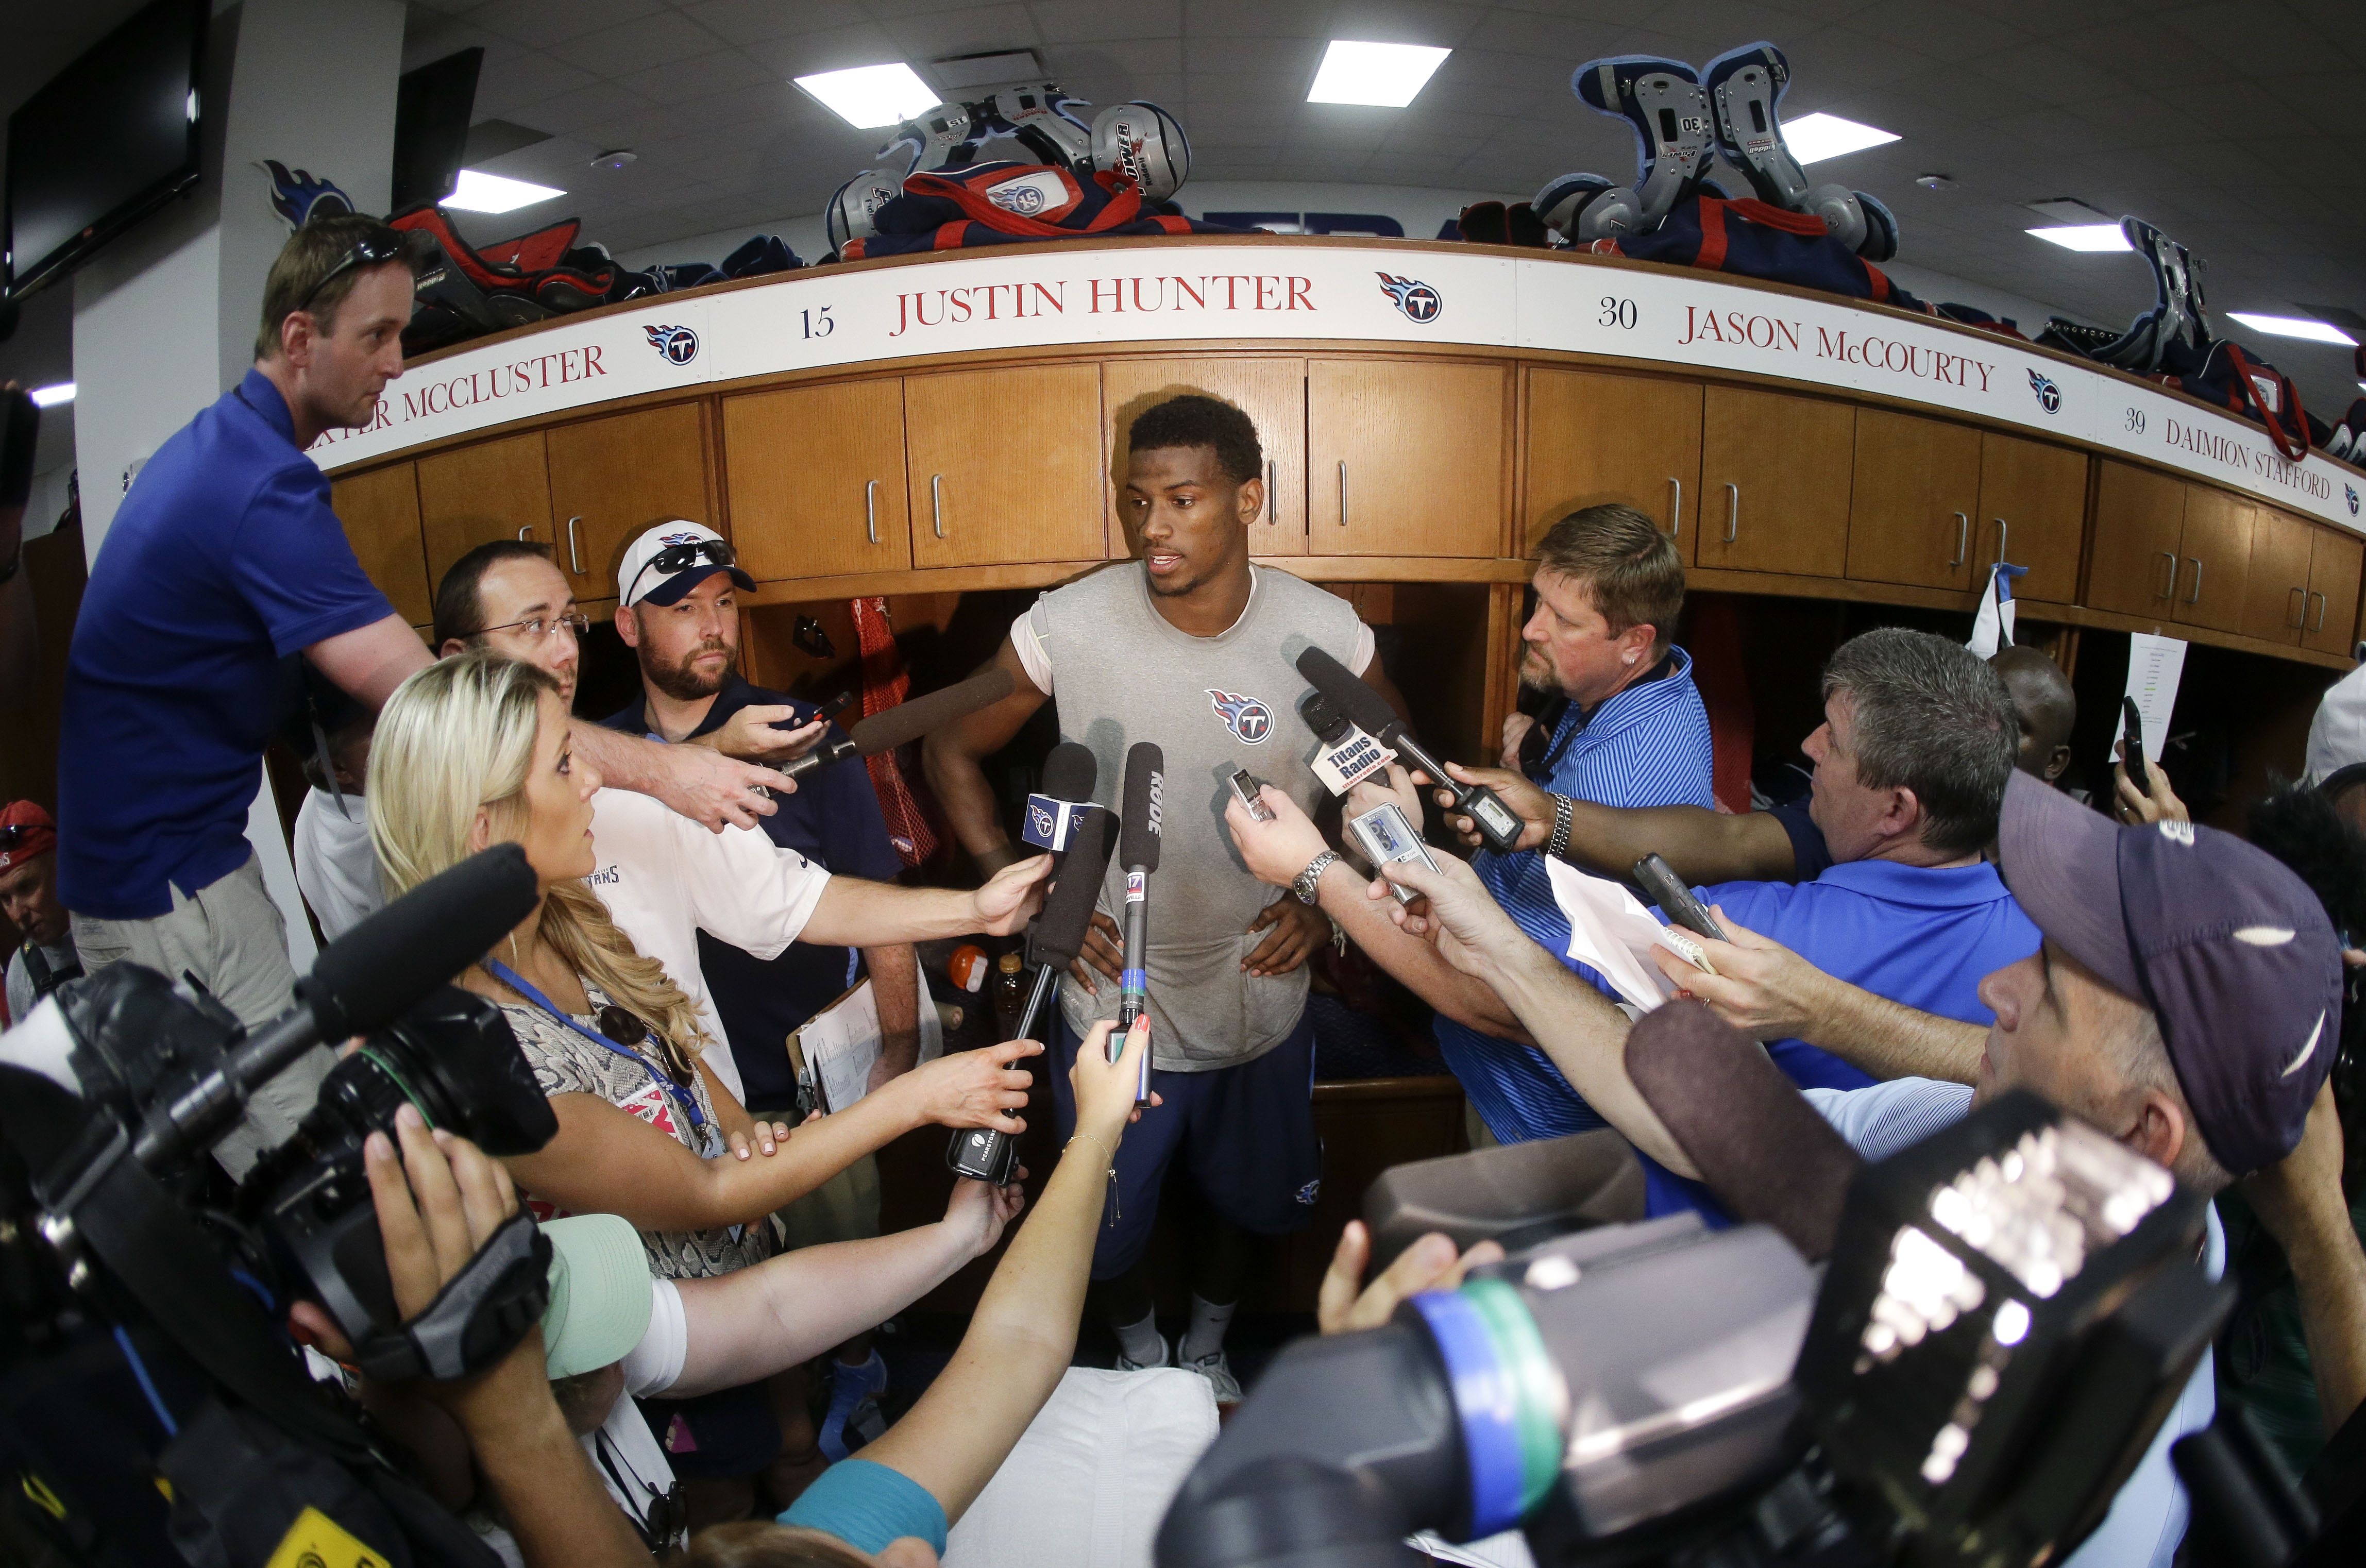 Tennessee Titans wide receiver Justin Hunter answers questions following the first day of NFL football training camp Friday, July 31, 2015, in Nashville, Tenn. (AP Photo/Mark Humphrey)